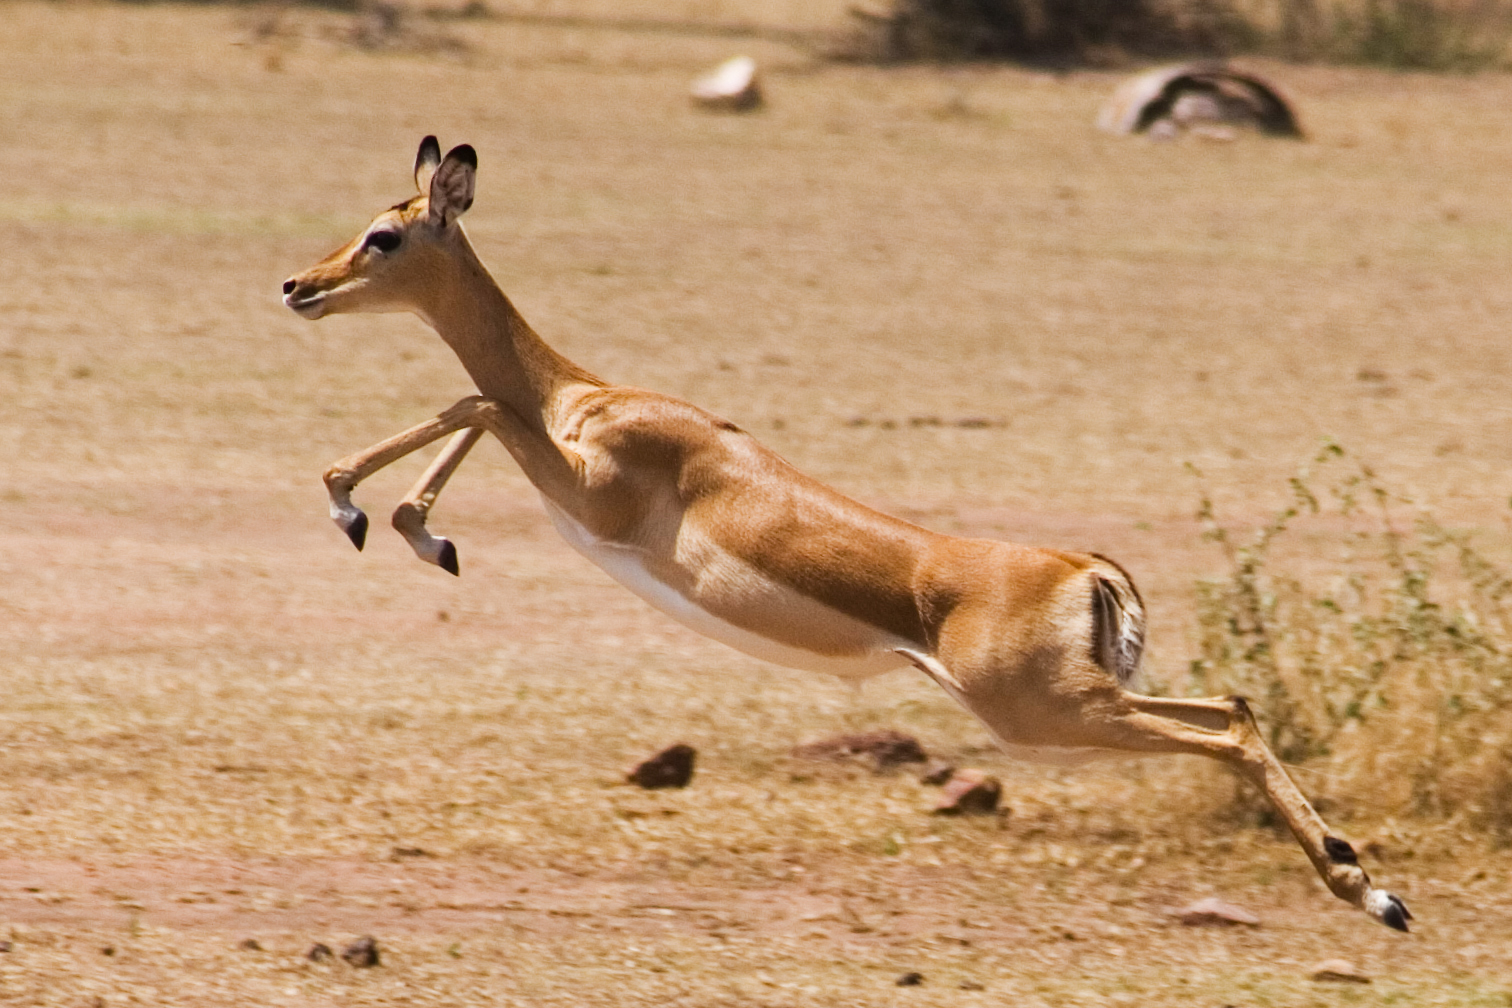 gazelle running from lion - photo #39